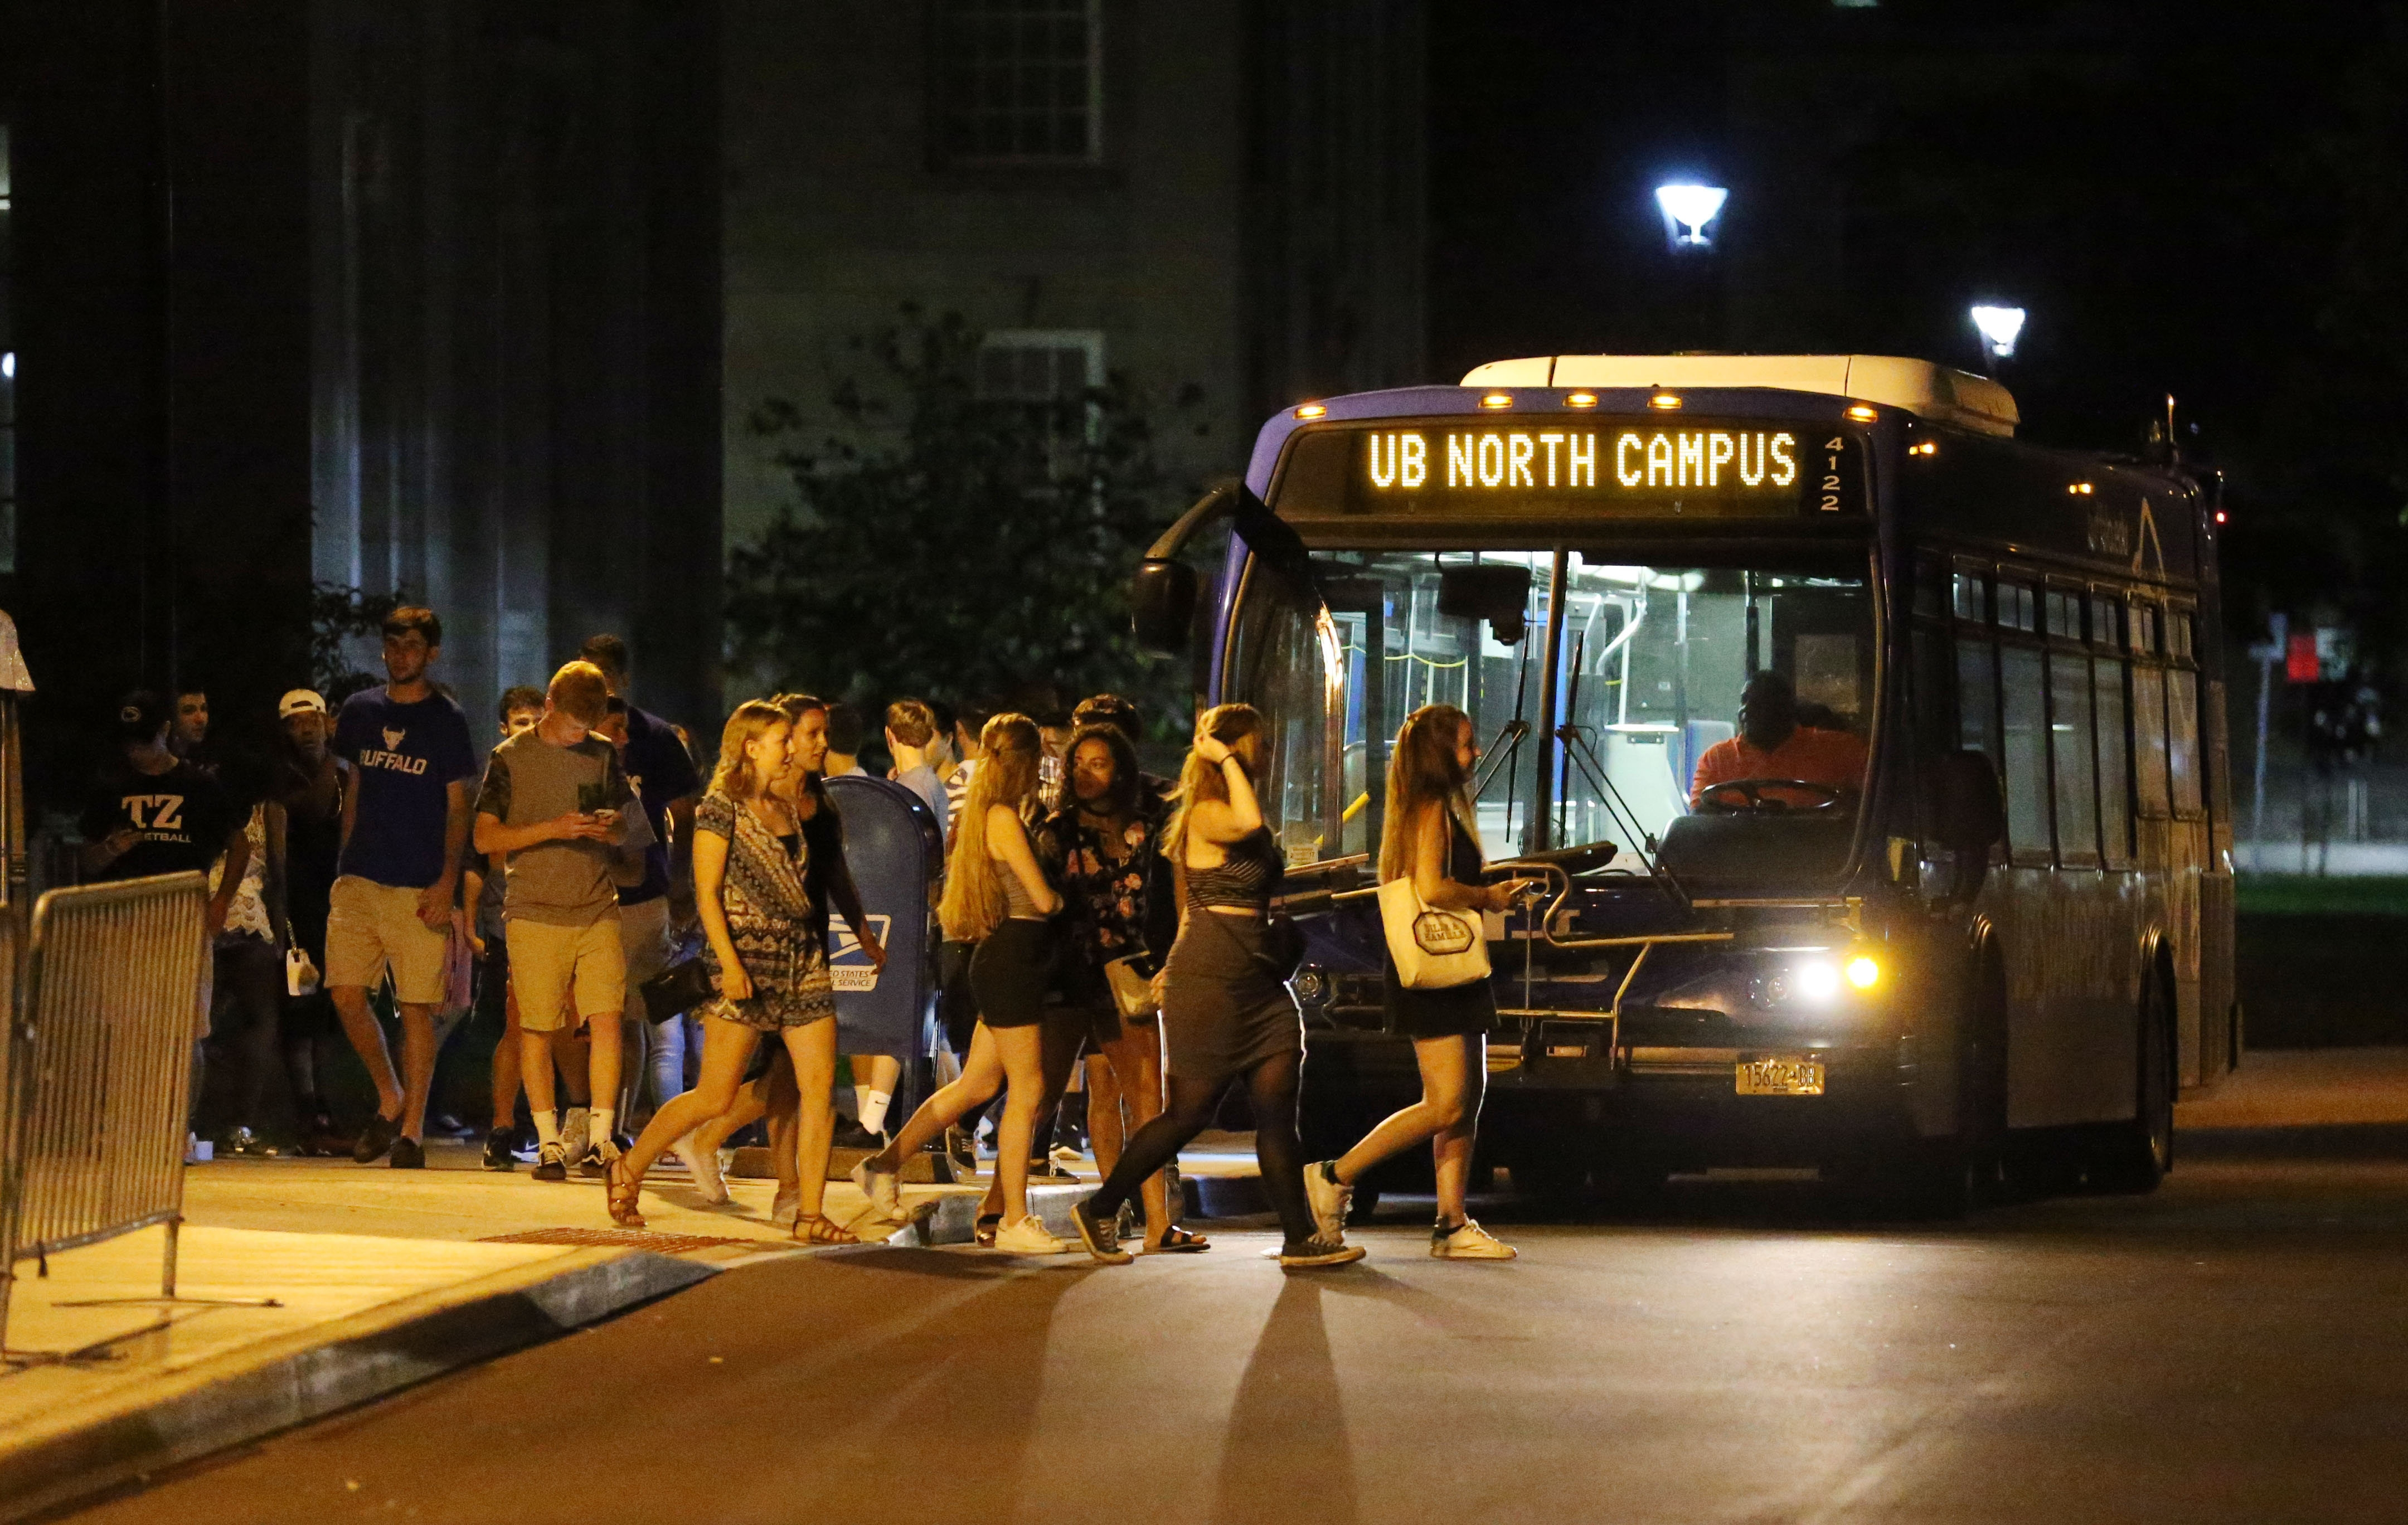 UB students head off a bus at the South Campus in search of house parties in nearby University Heights.